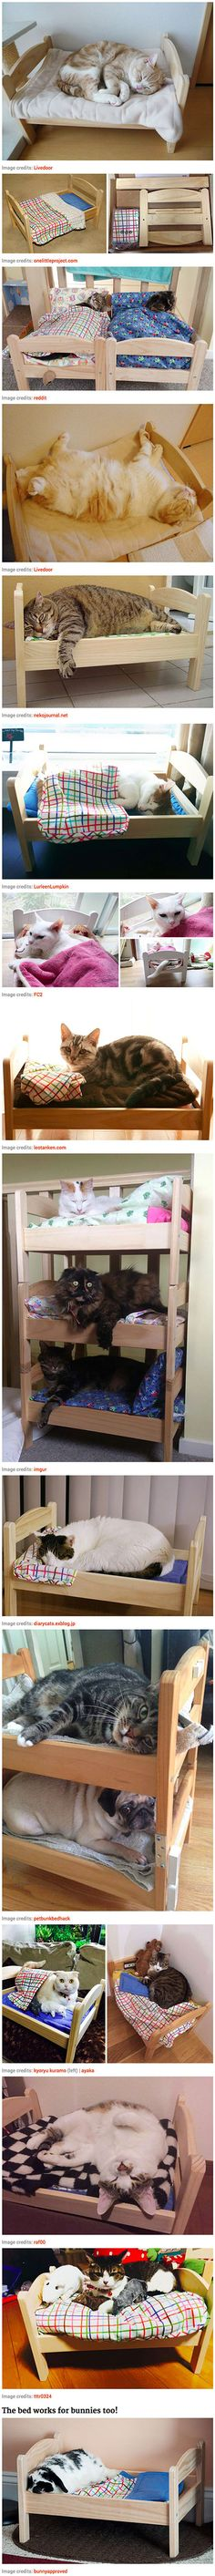 Some clever Japanese cat owners have re-purposed a simple but popular doll bed from IKEA, turning it into an adorable bed for their cats and other pets. The $20 Duktig is officially a toy bed for children's dolls, but it also seems to have become IKEA's first foray into the pet furniture market. Incidentally, the slot at either end of the bed is an excellent feature for cats – it lets them stick their tails out if they want to relax.